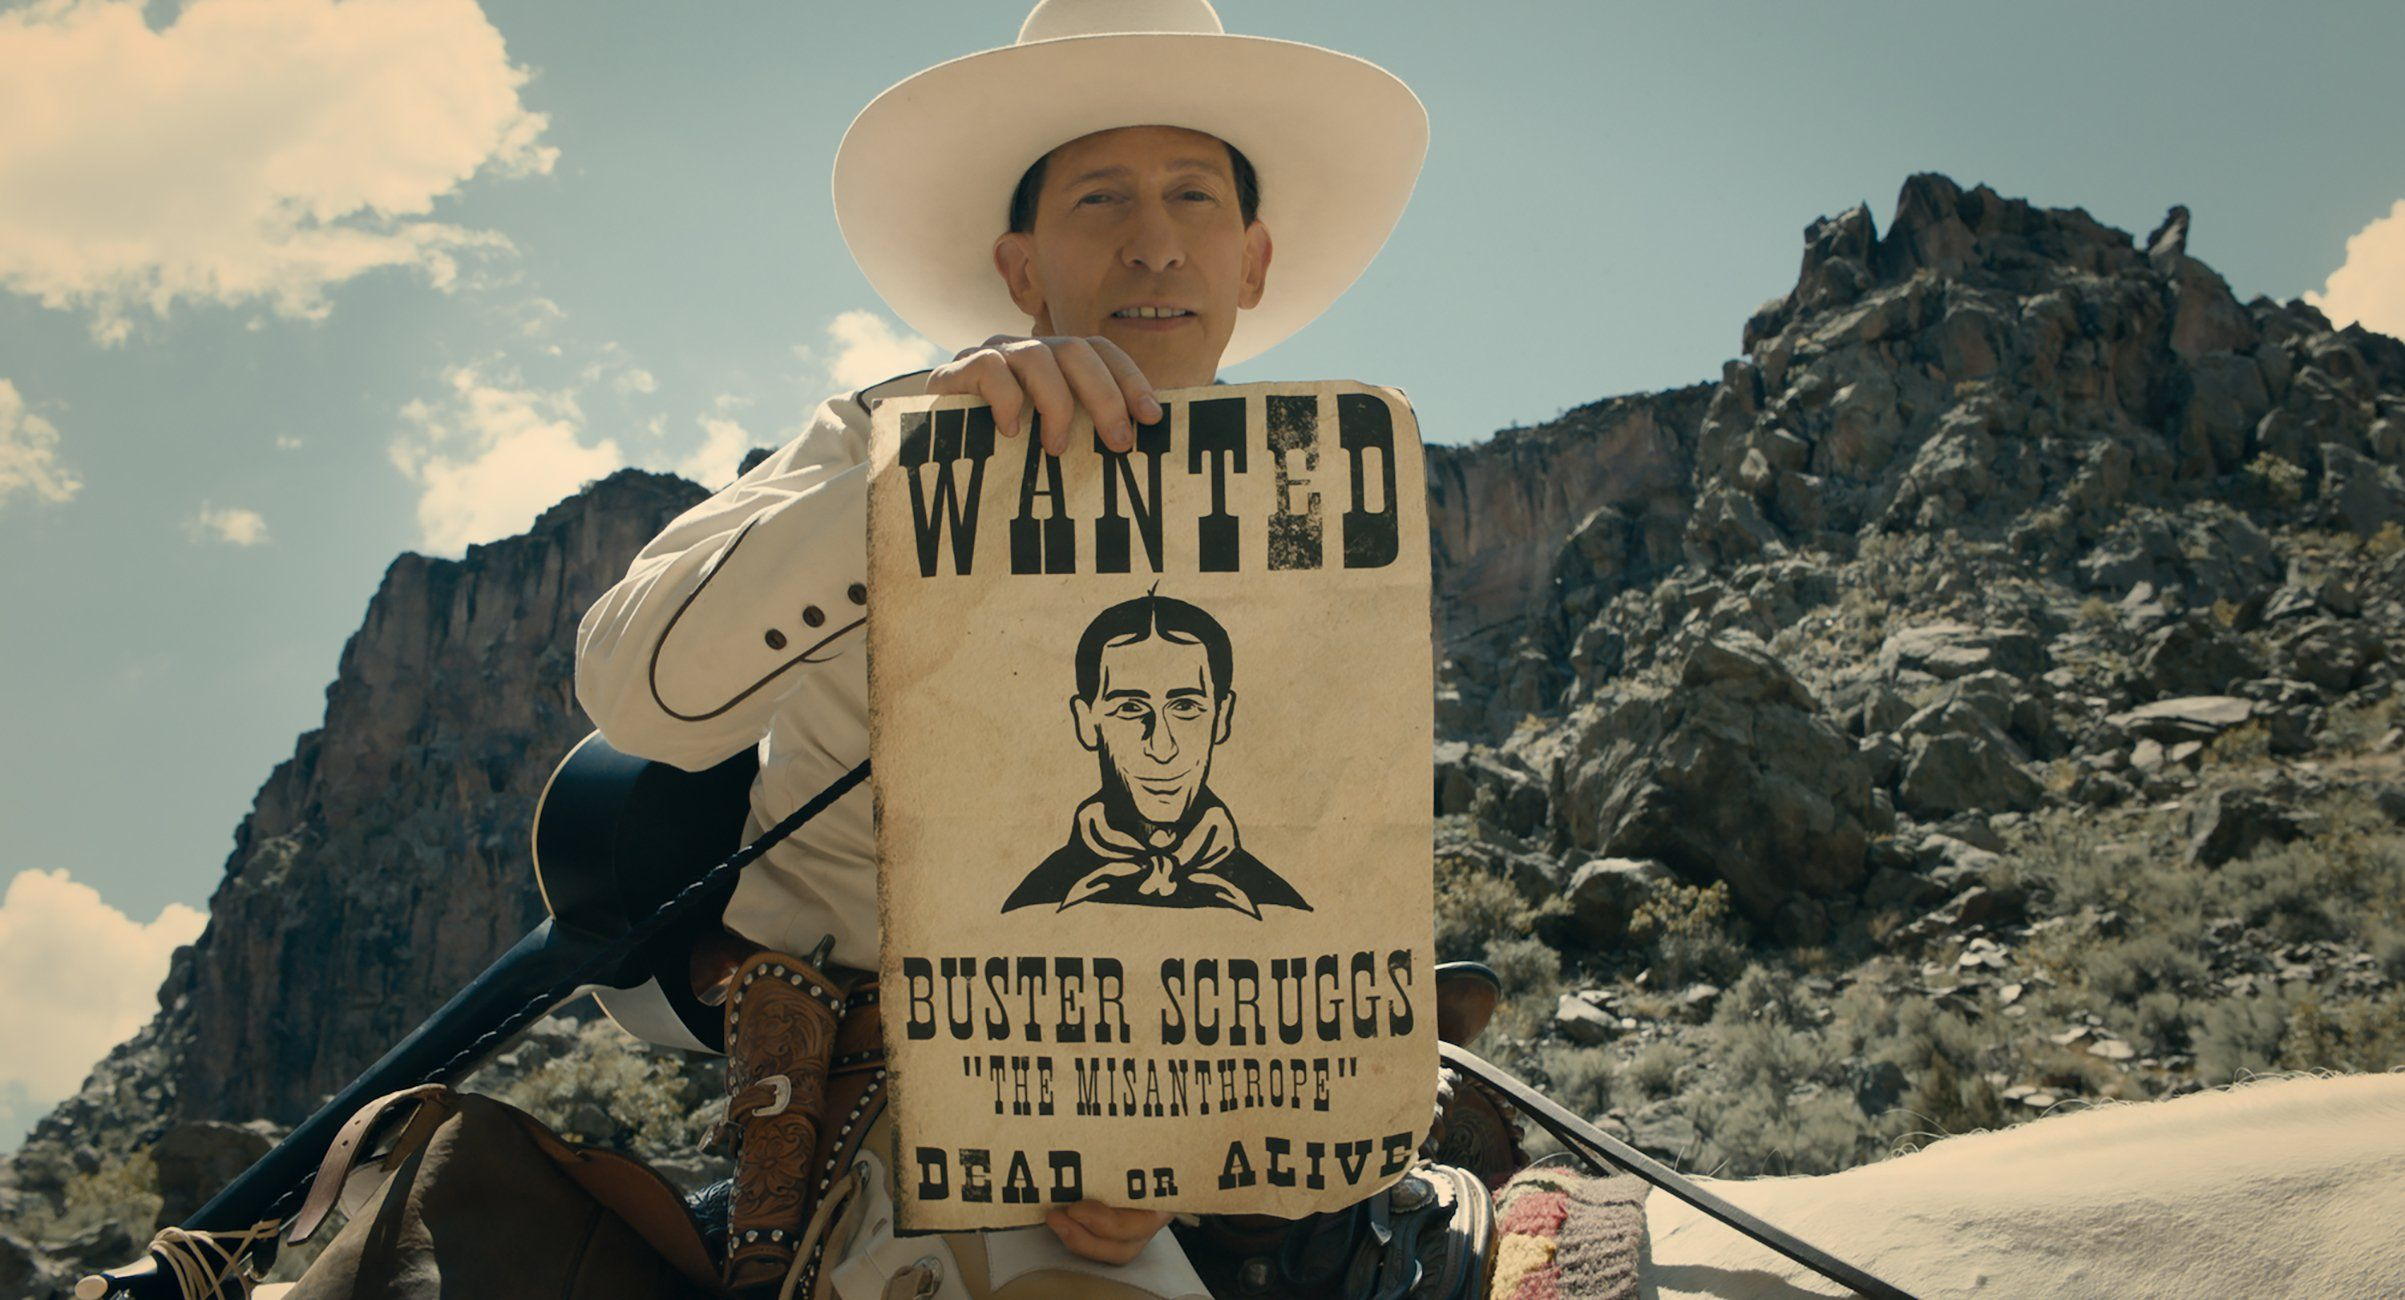 Venice Review The Coen Brothers Reinvent The Classics In The Ballad Of Buster Scruggs Netflix Movies Anthology Film Brothers Movie